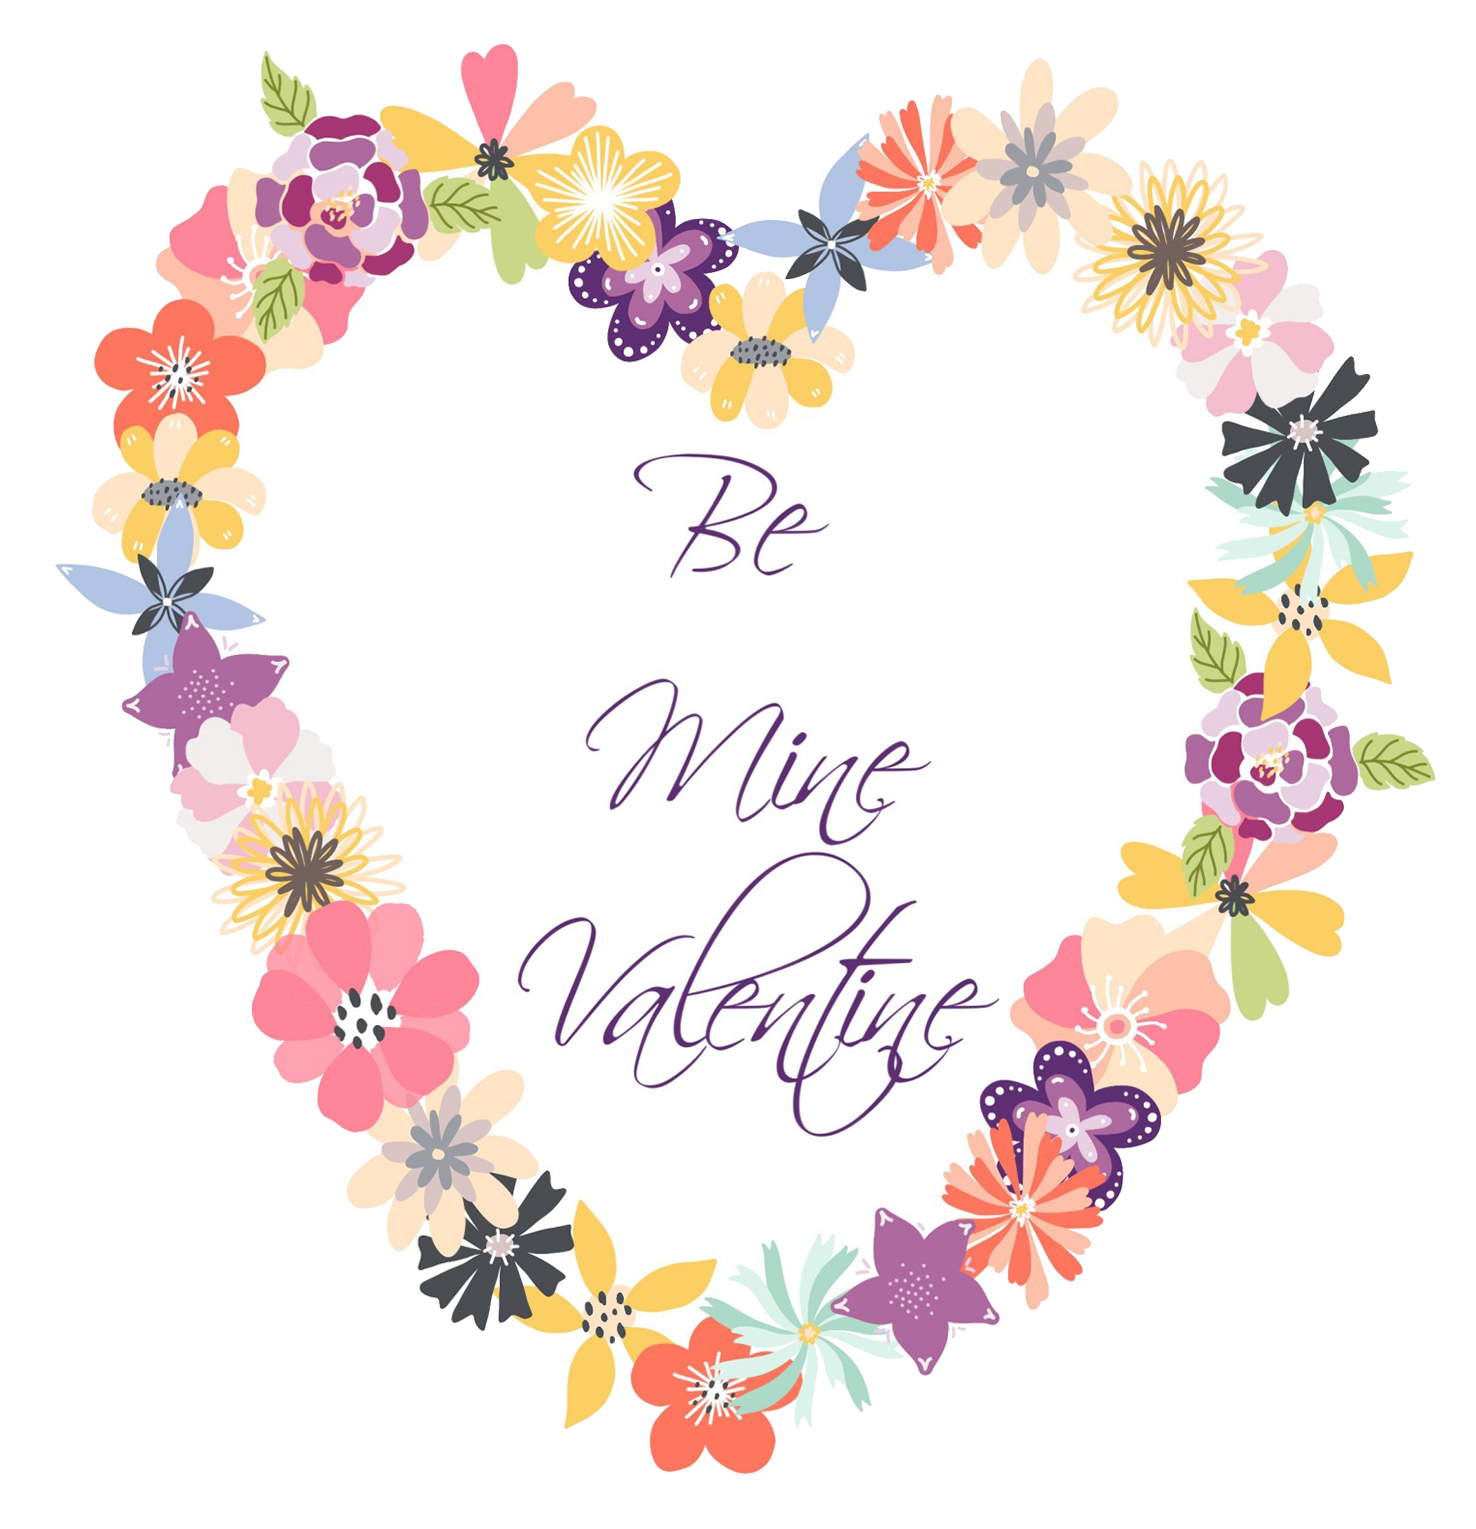 Be mine Valentine-heart flowers